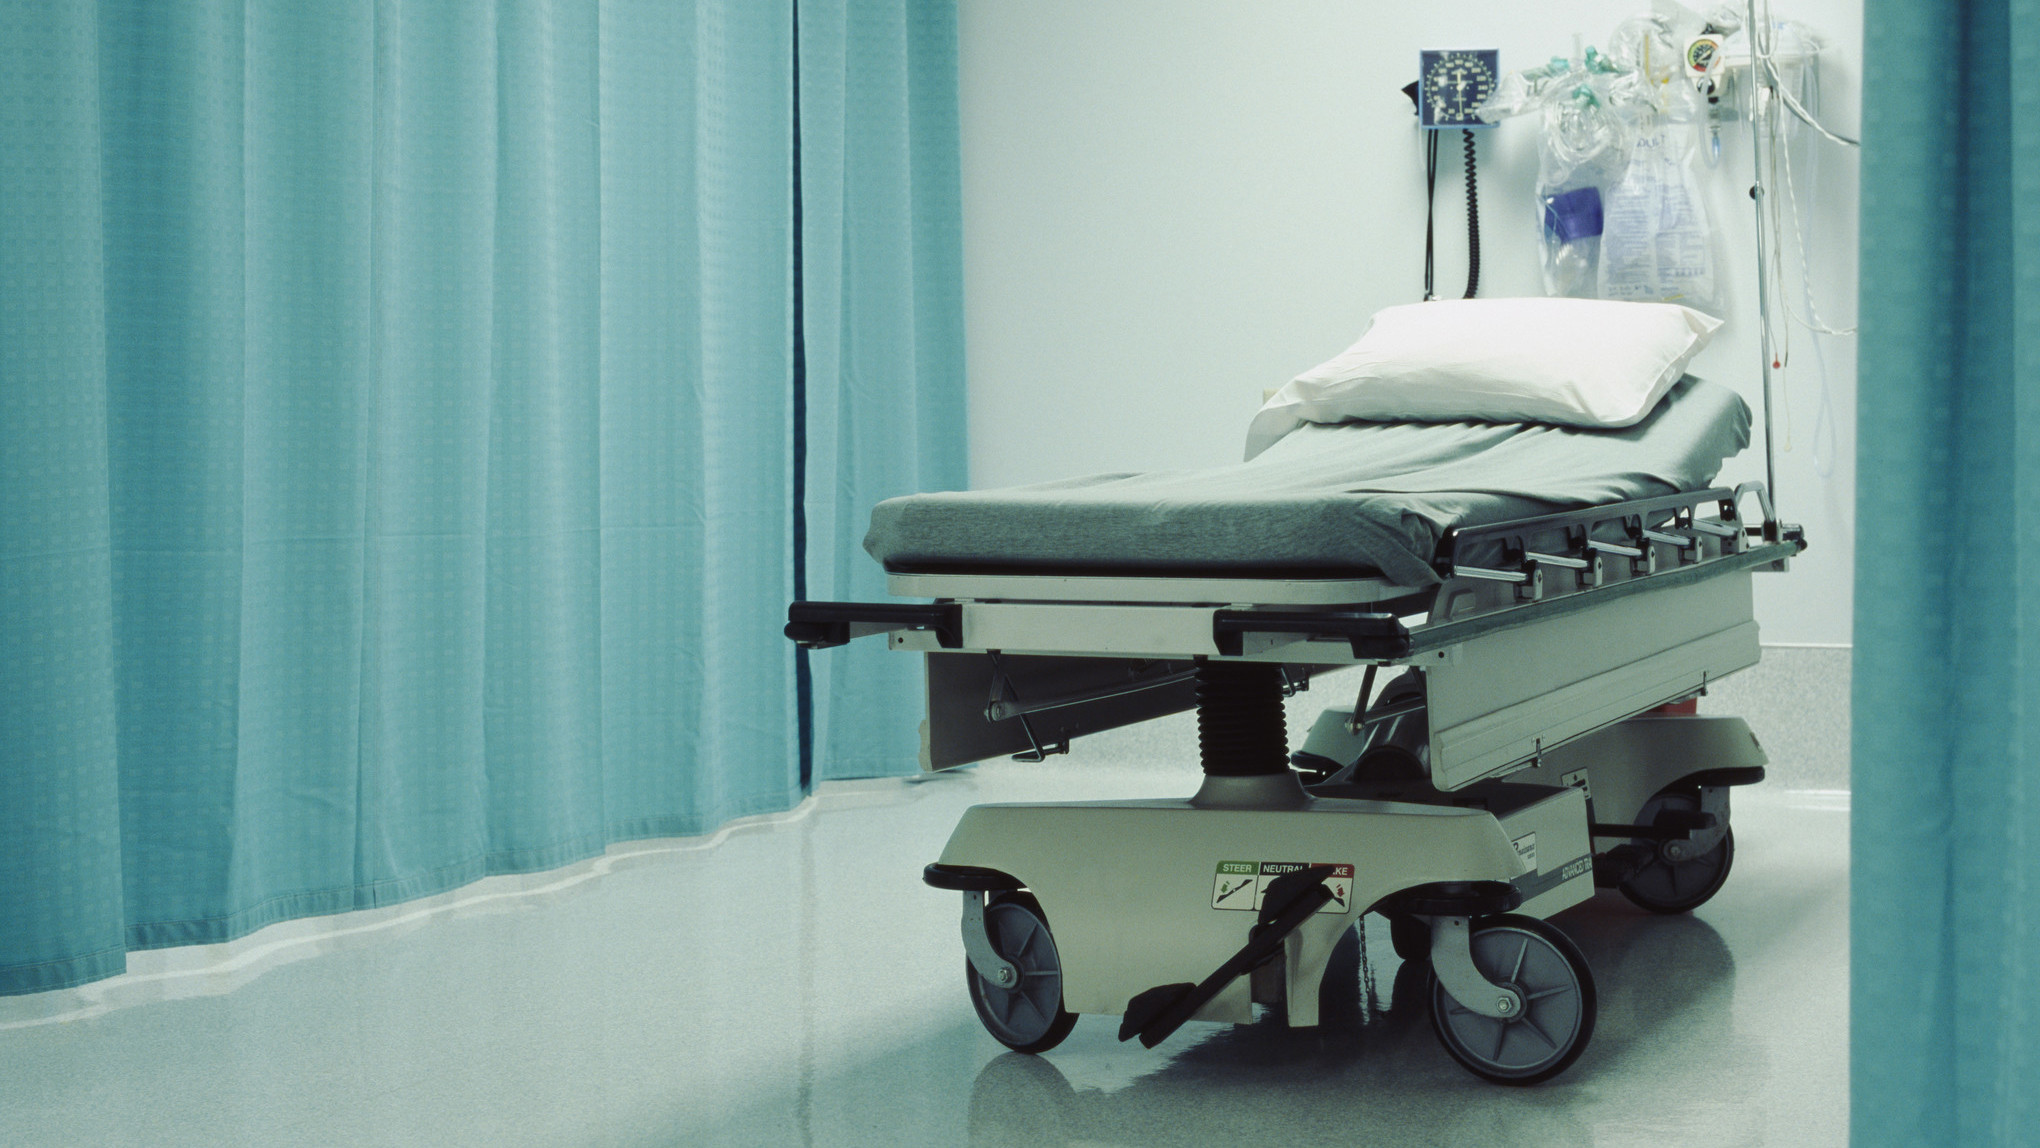 Medical errors cost the country billions. Does the hospital or patient pay?